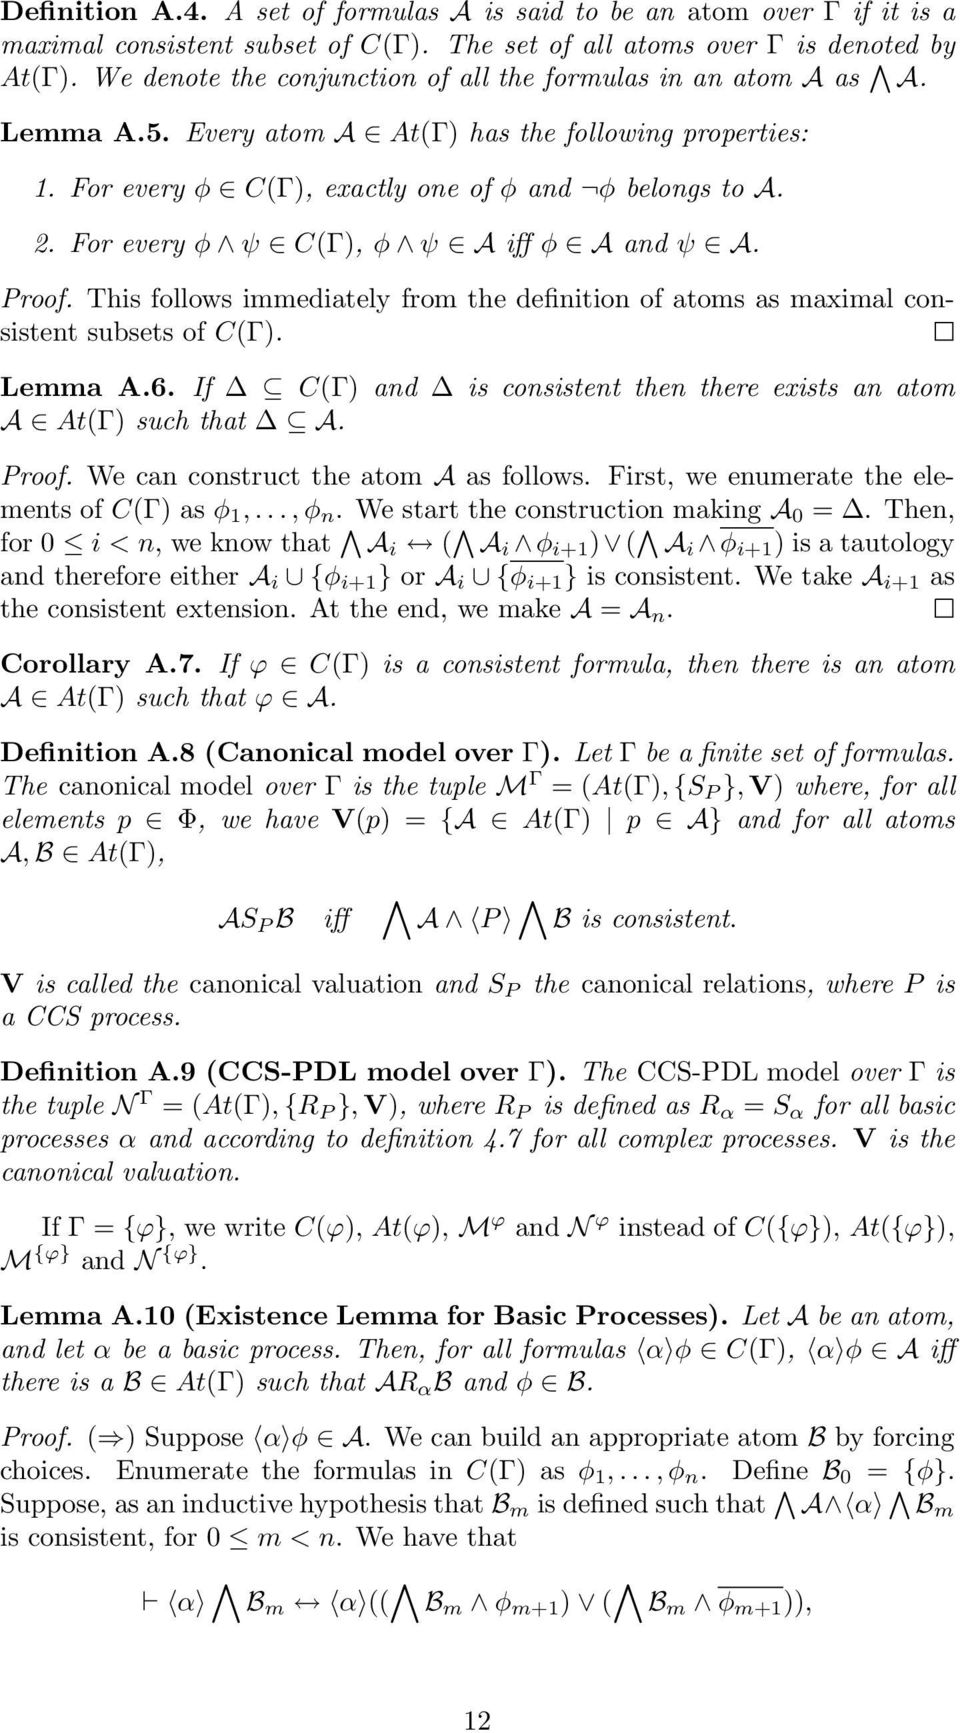 For every φ ψ C(Γ), φ ψ A iff φ A and ψ A. Proof. This follows immediately from the definition of atoms as maximal consistent subsets of C(Γ). Lemma A.6.